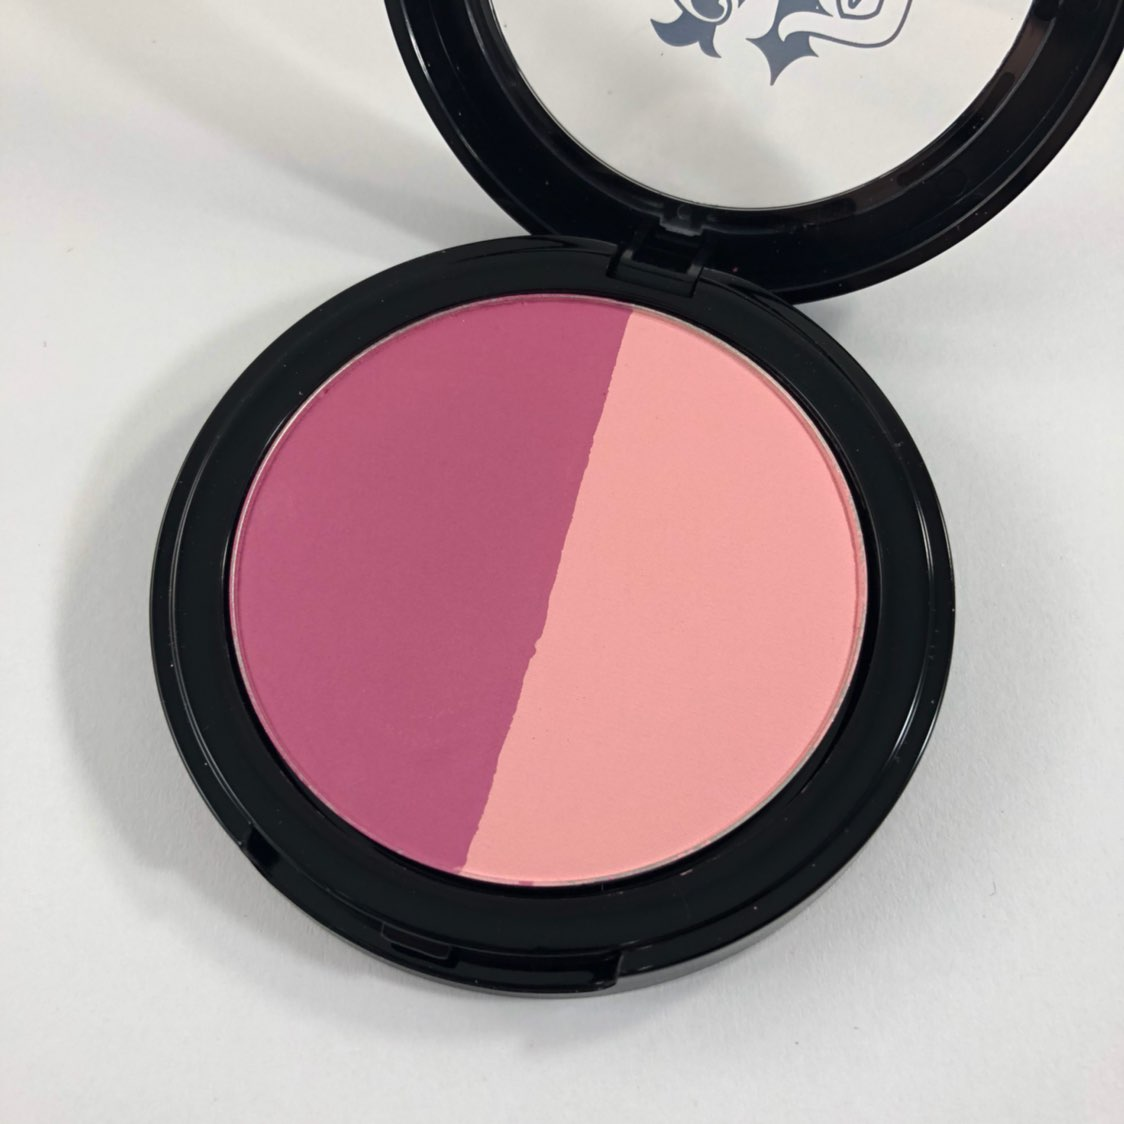 Kat Von D Shade Light Blush Bonnie Clyde